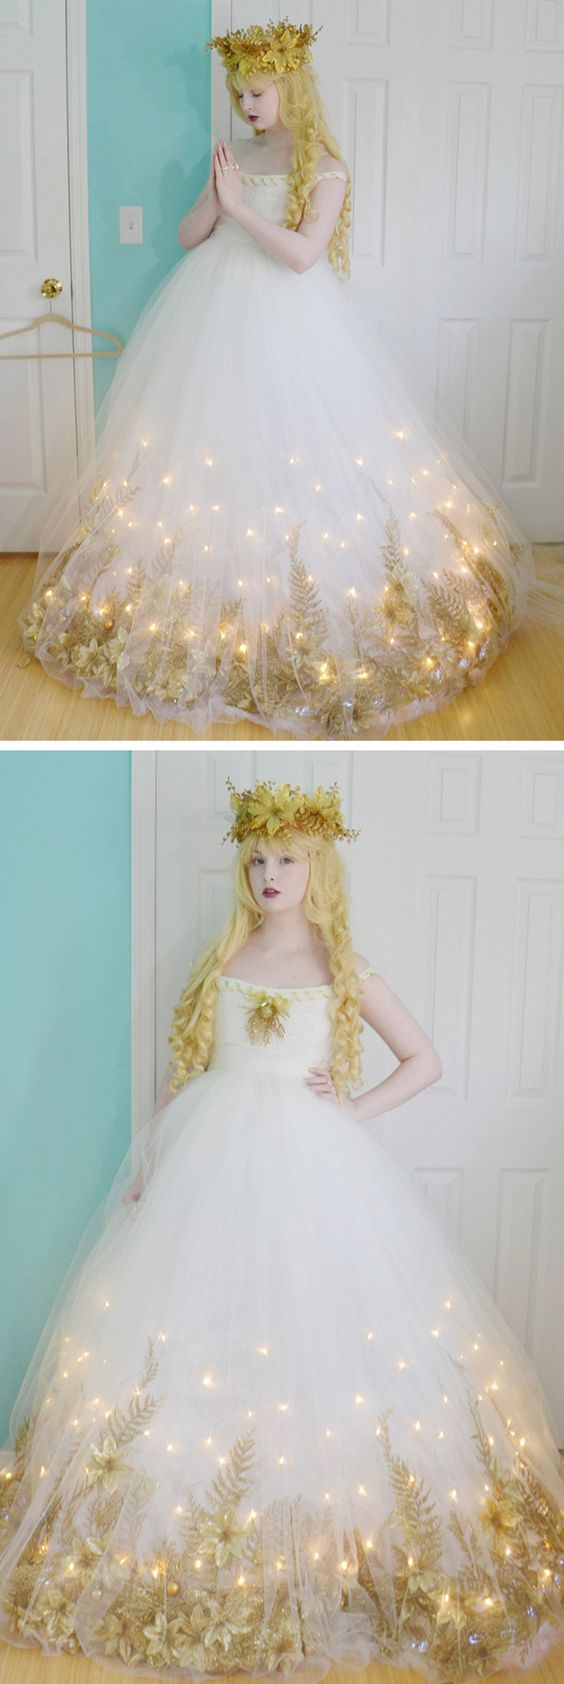 Awesome diy inspiration a light up fairy garden dress tutorial